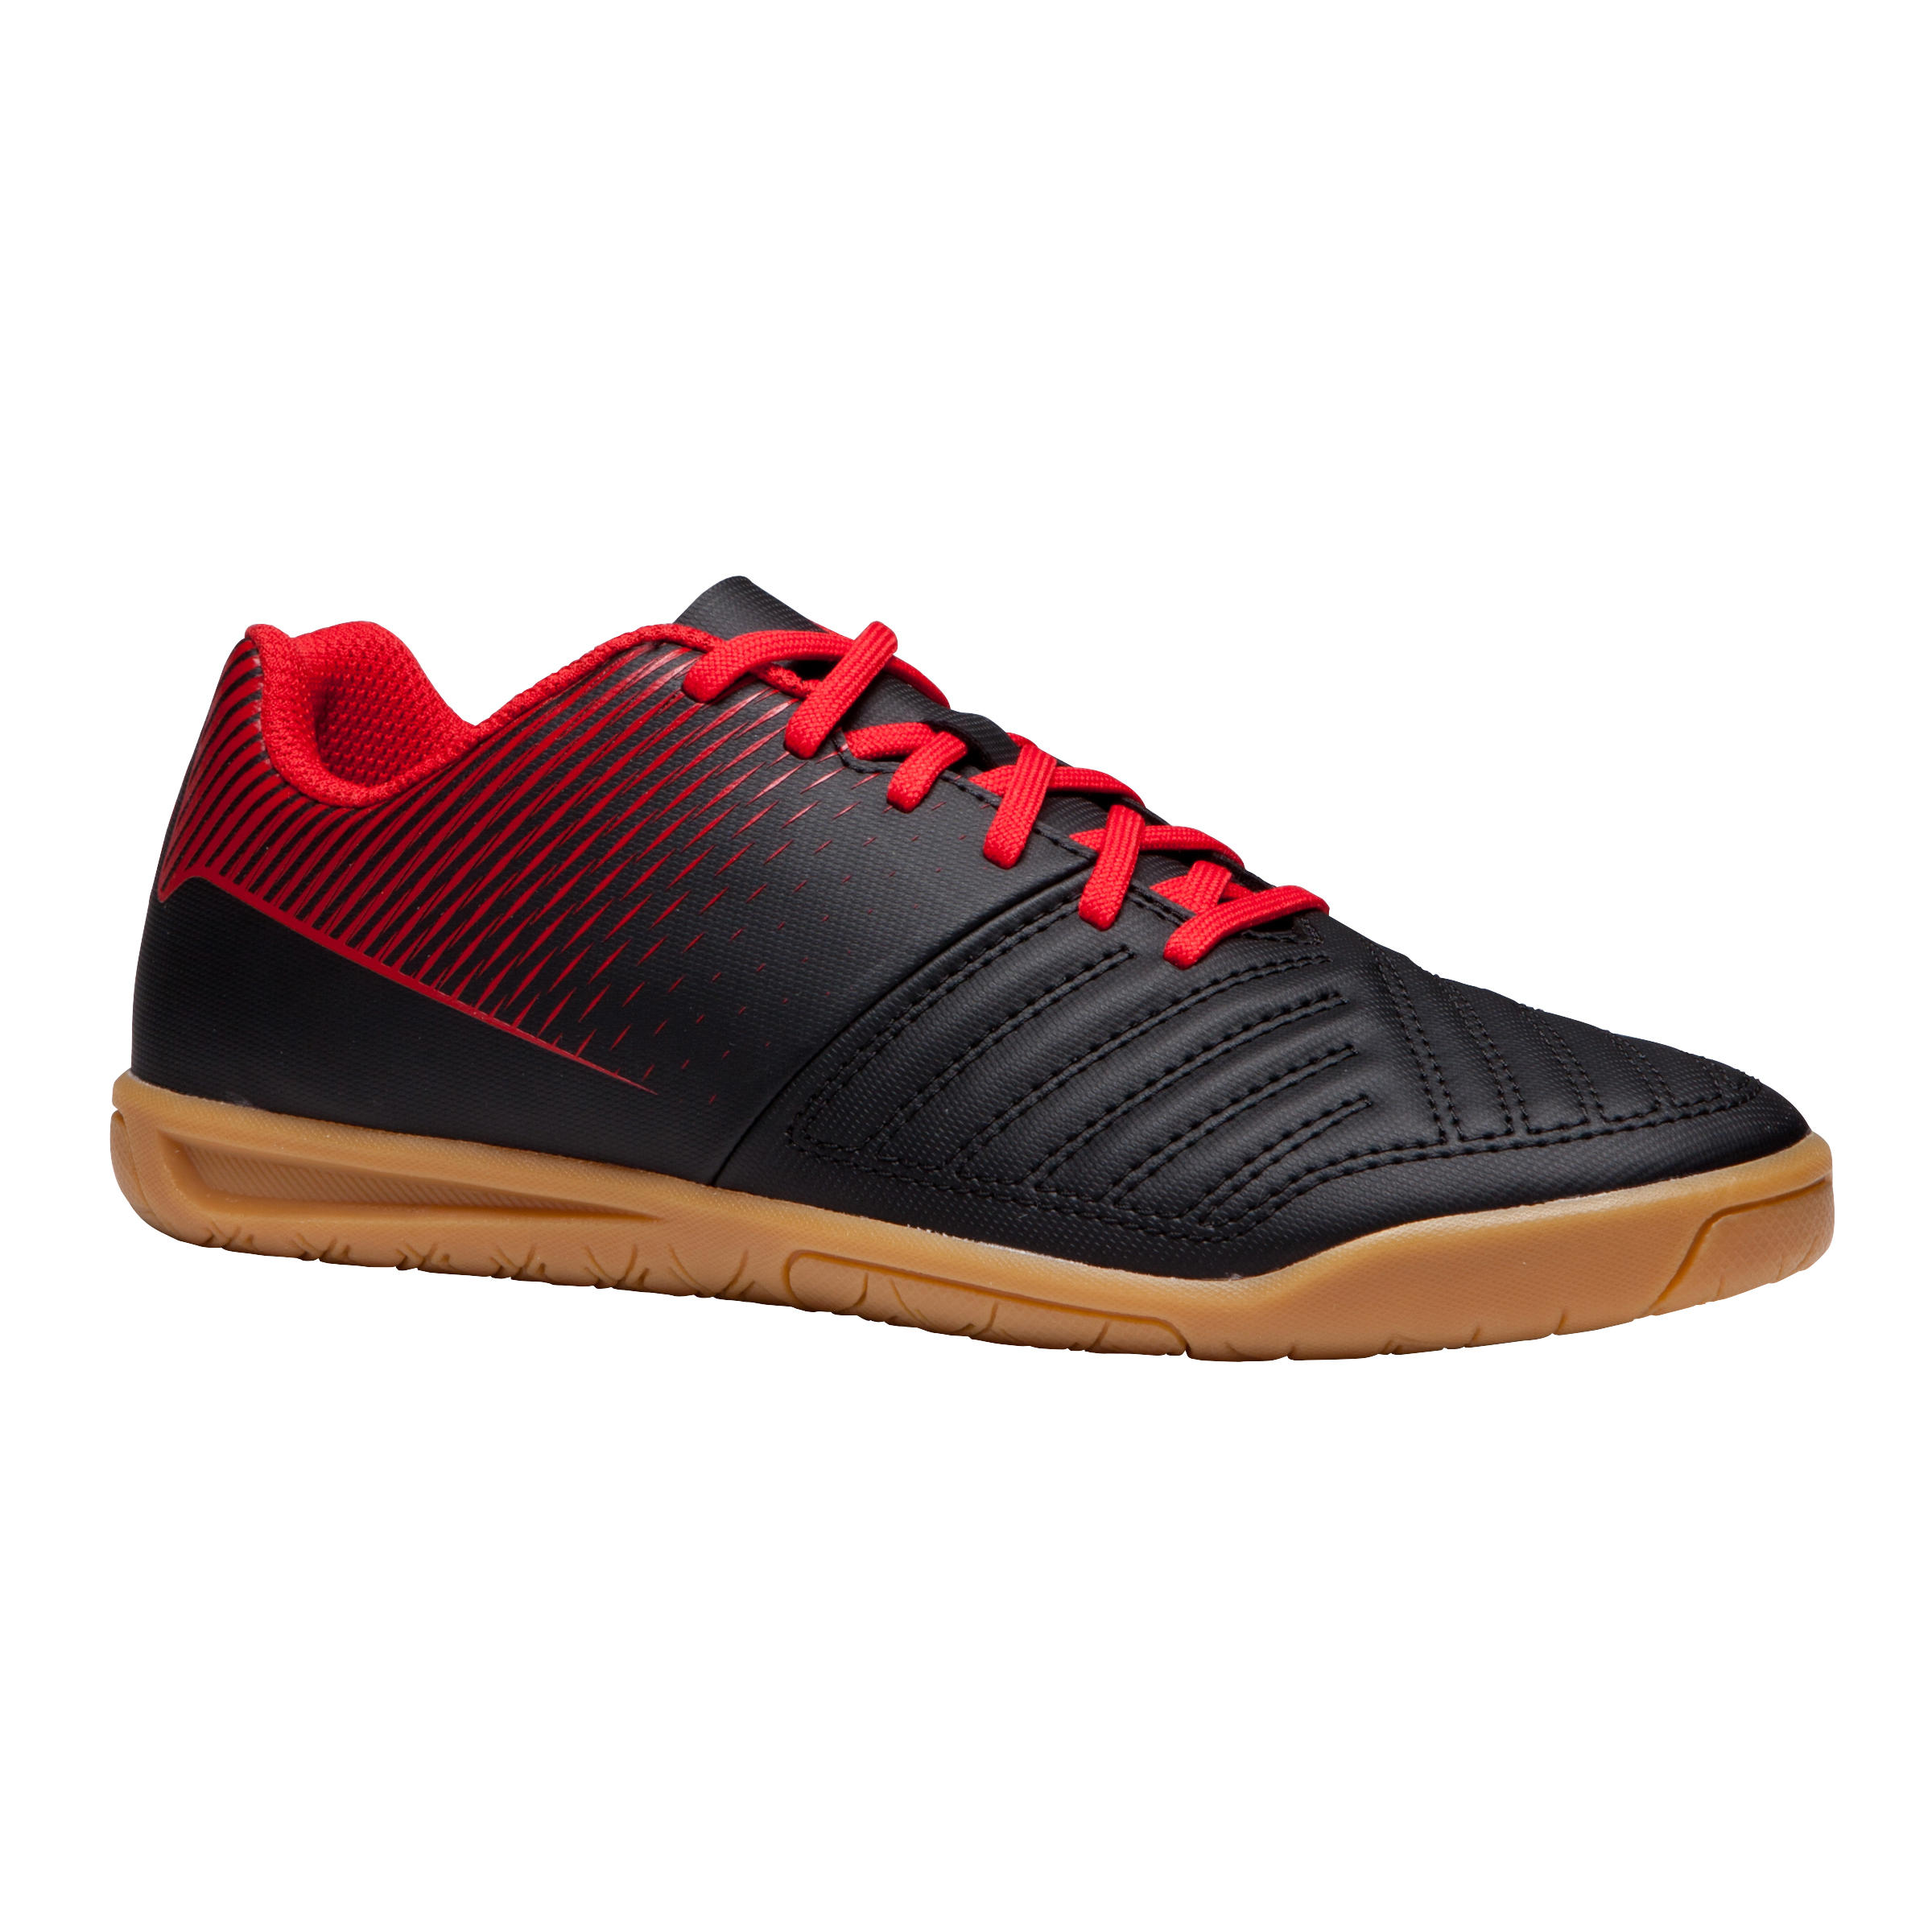 Agility 100 Sala Kids' Futsal Trainers - Black/Red